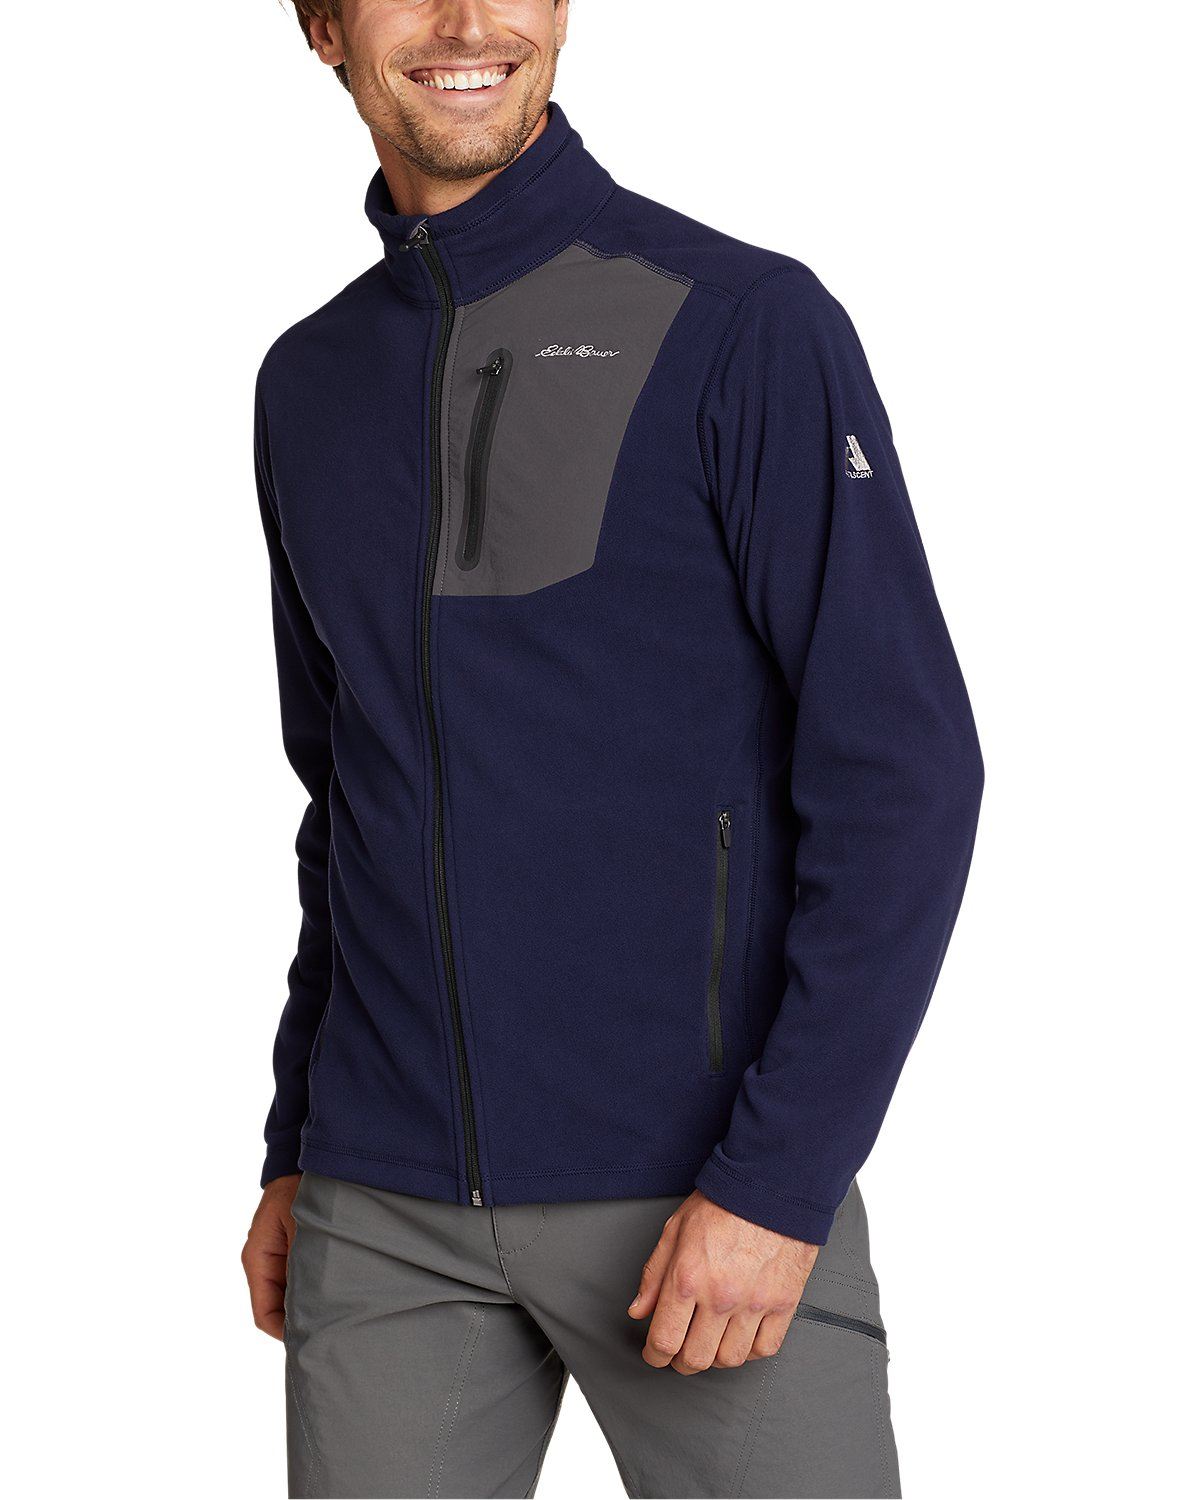 Eddie Bauer Men's Cloud Layer Pro Full-Zip Jacket